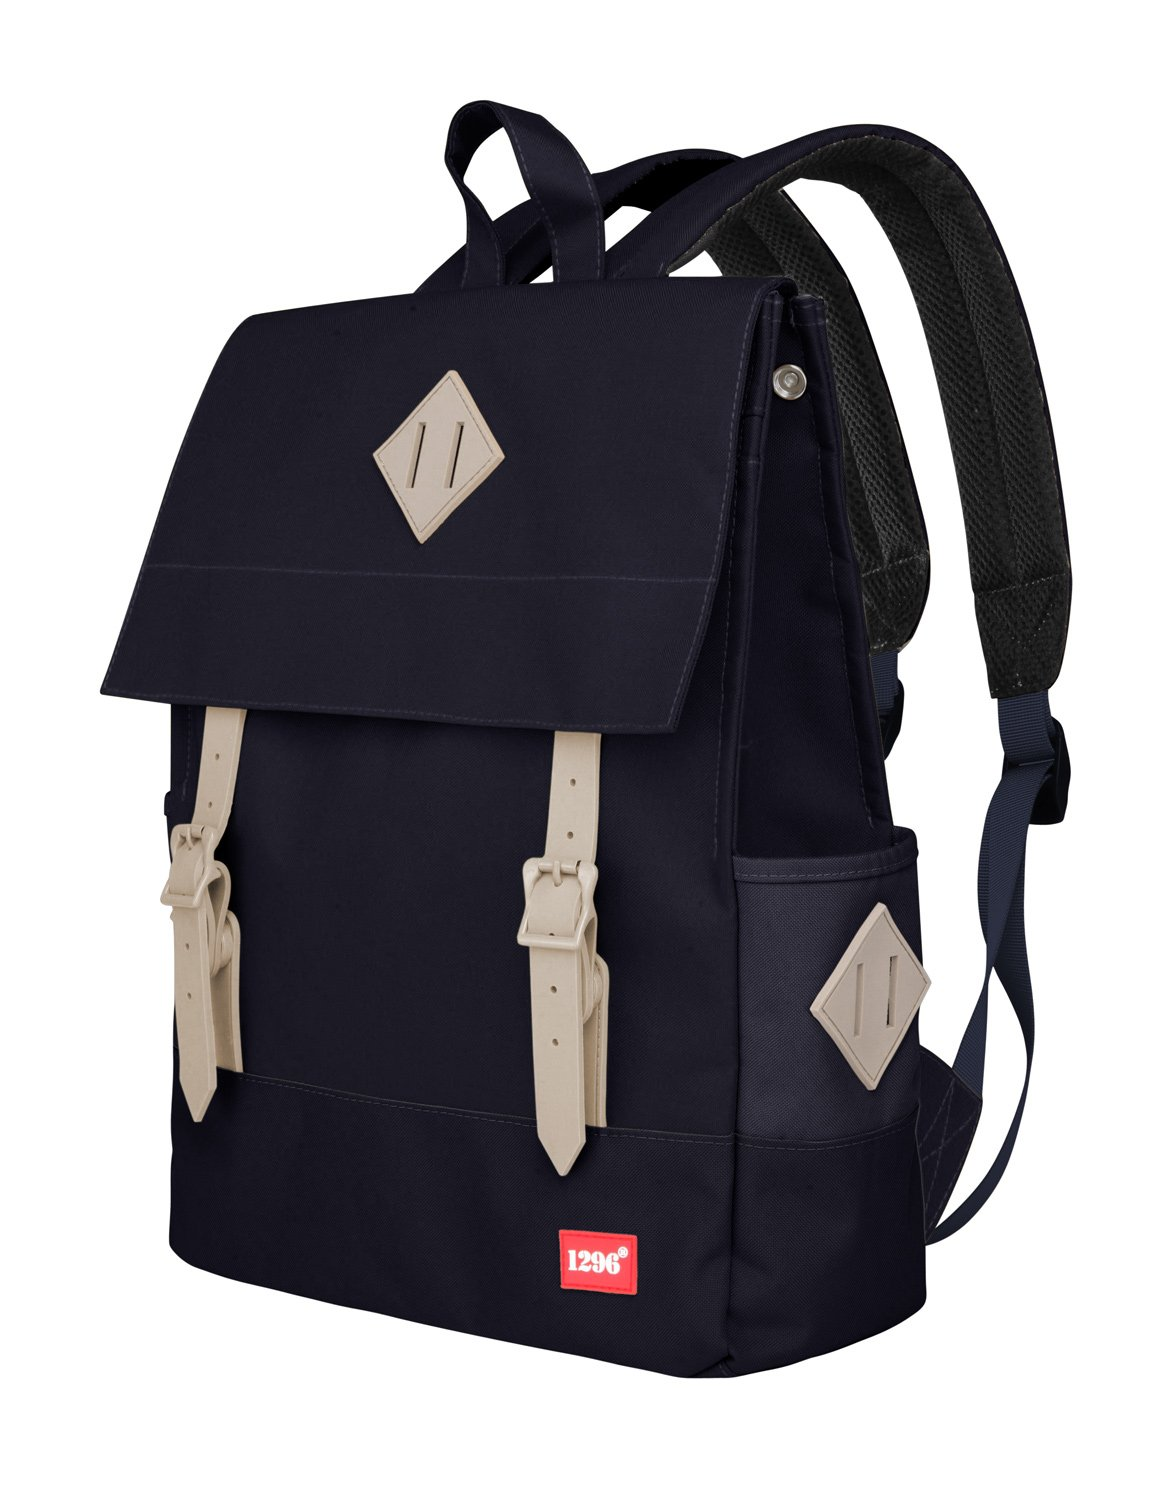 blnbag U1 - Leichter Tagesrucksack, Daypack für Damen und Herren mit Laptopfach, multifunktionaler City Rucksack, Backpack, Unisex, Beige